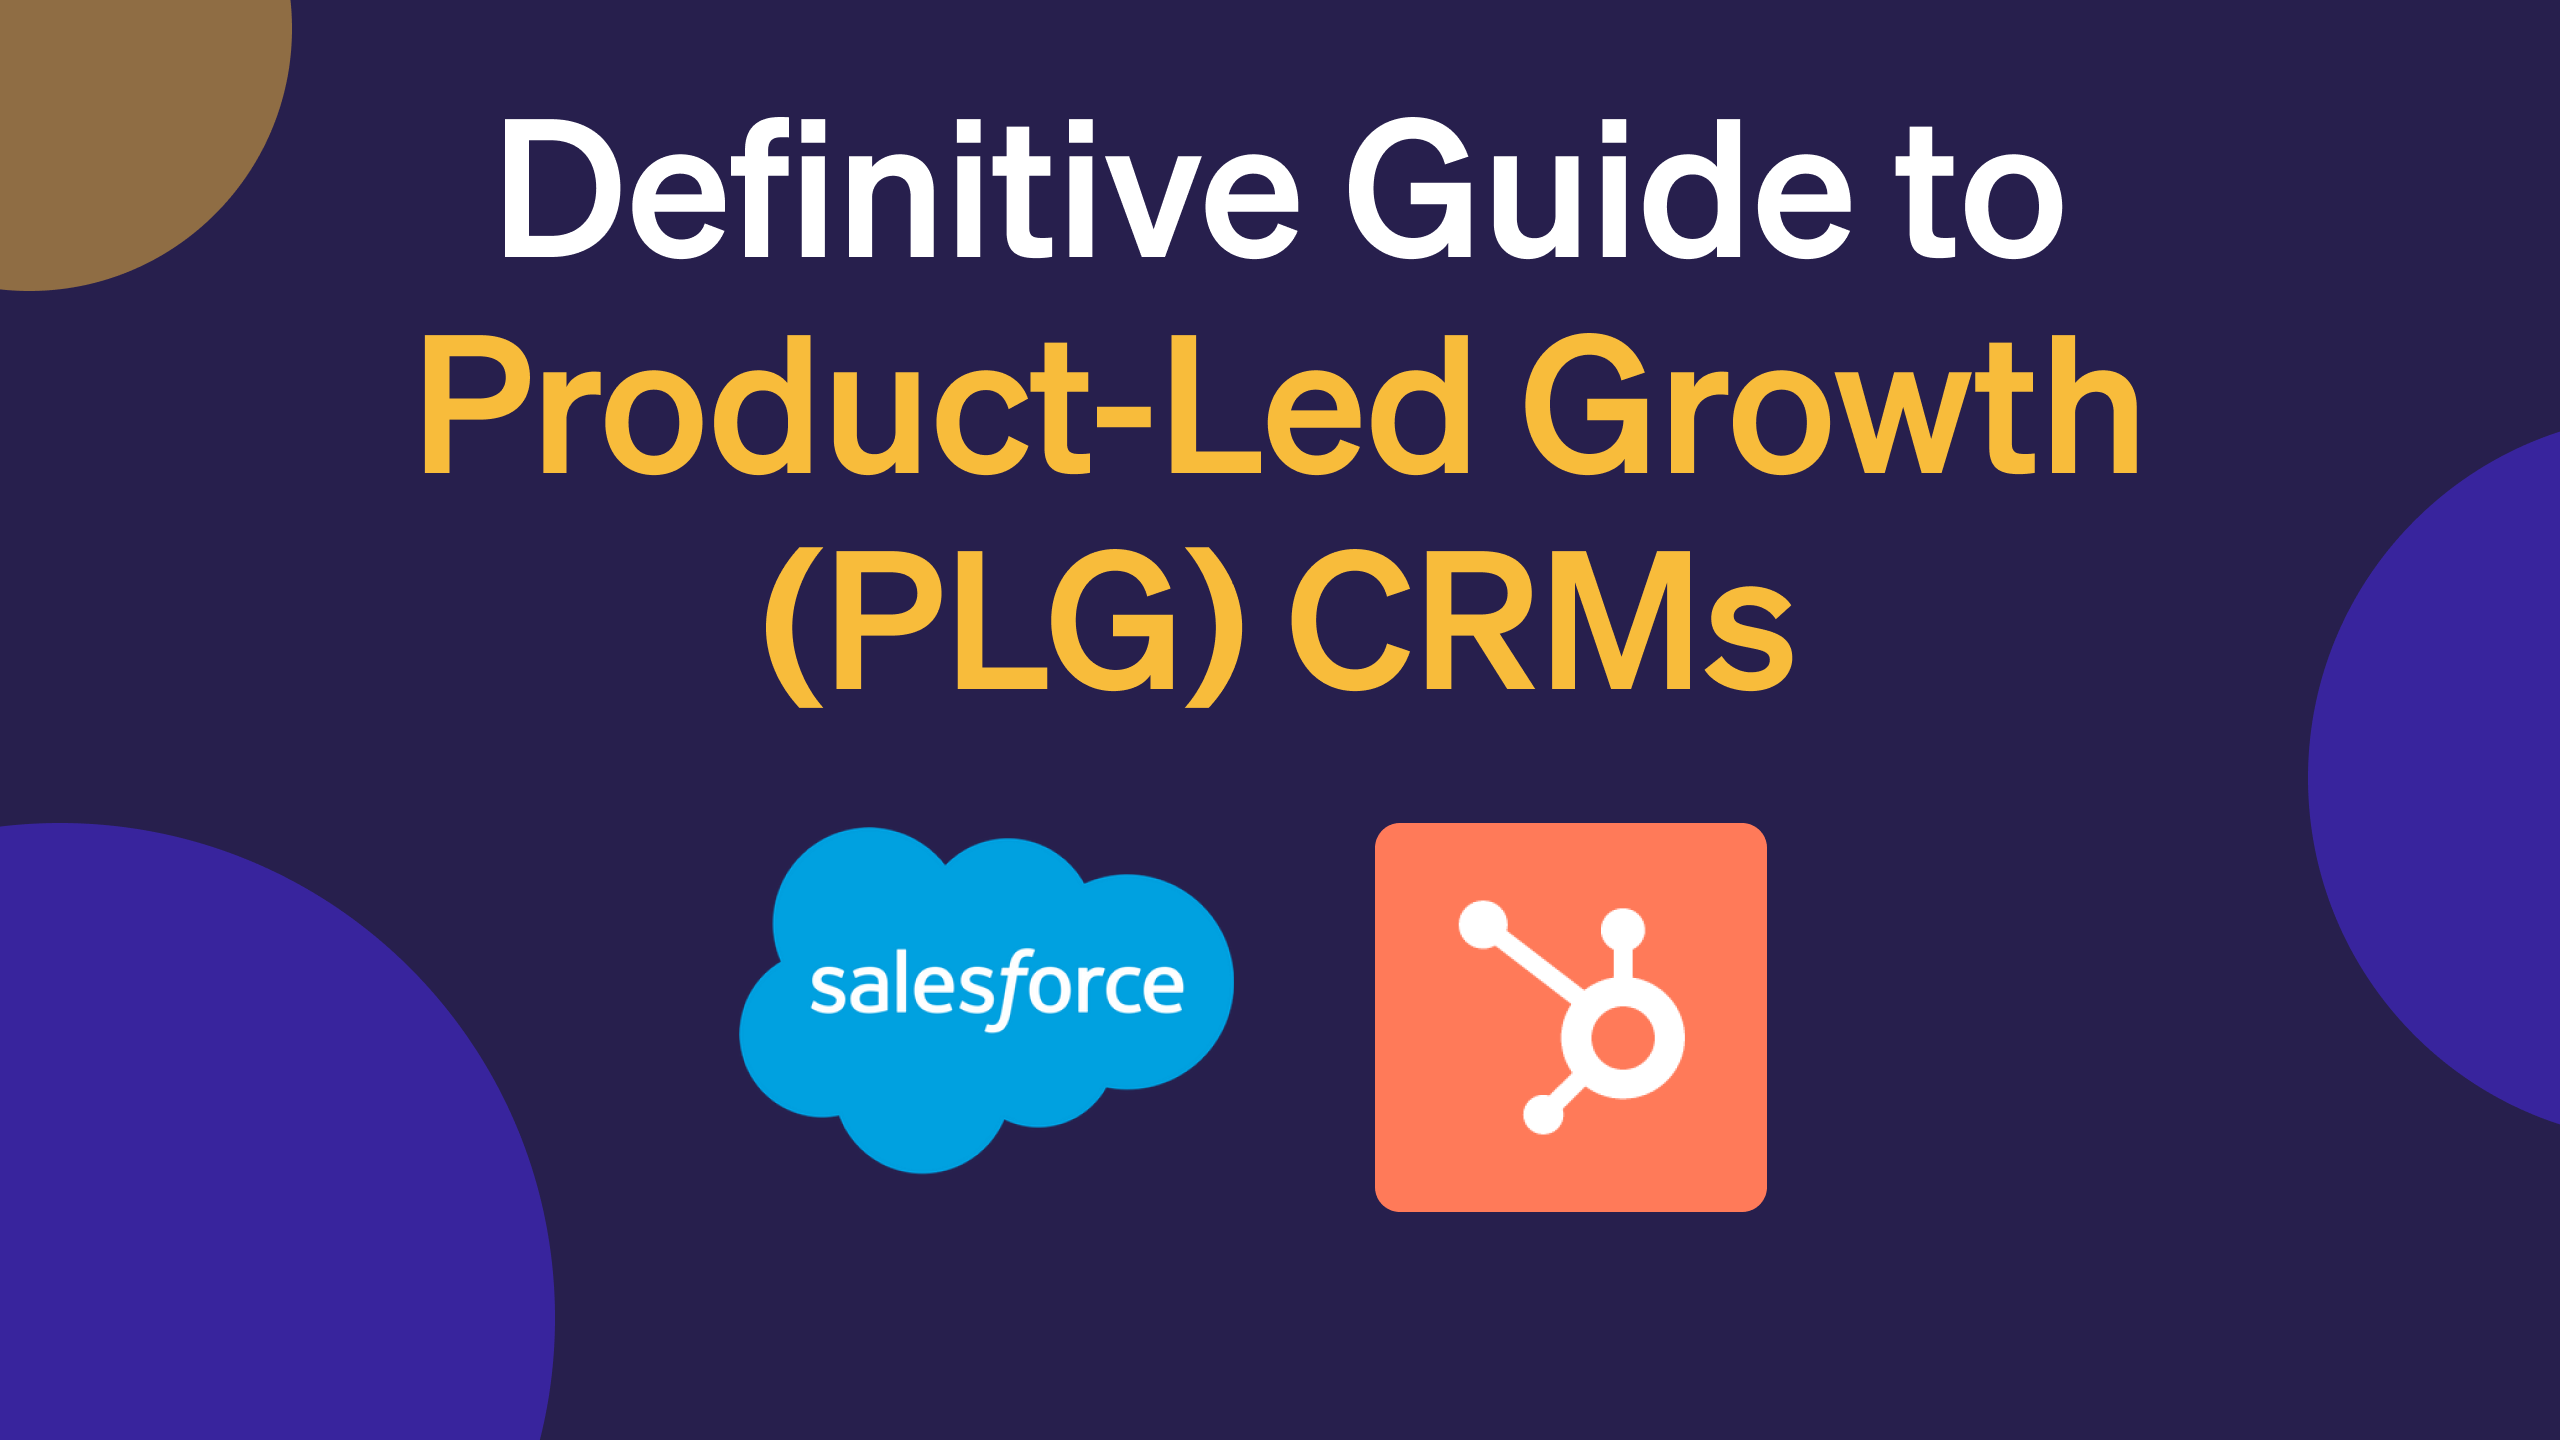 The Definitive Guide to Product-Led Growth (PLG) CRMs